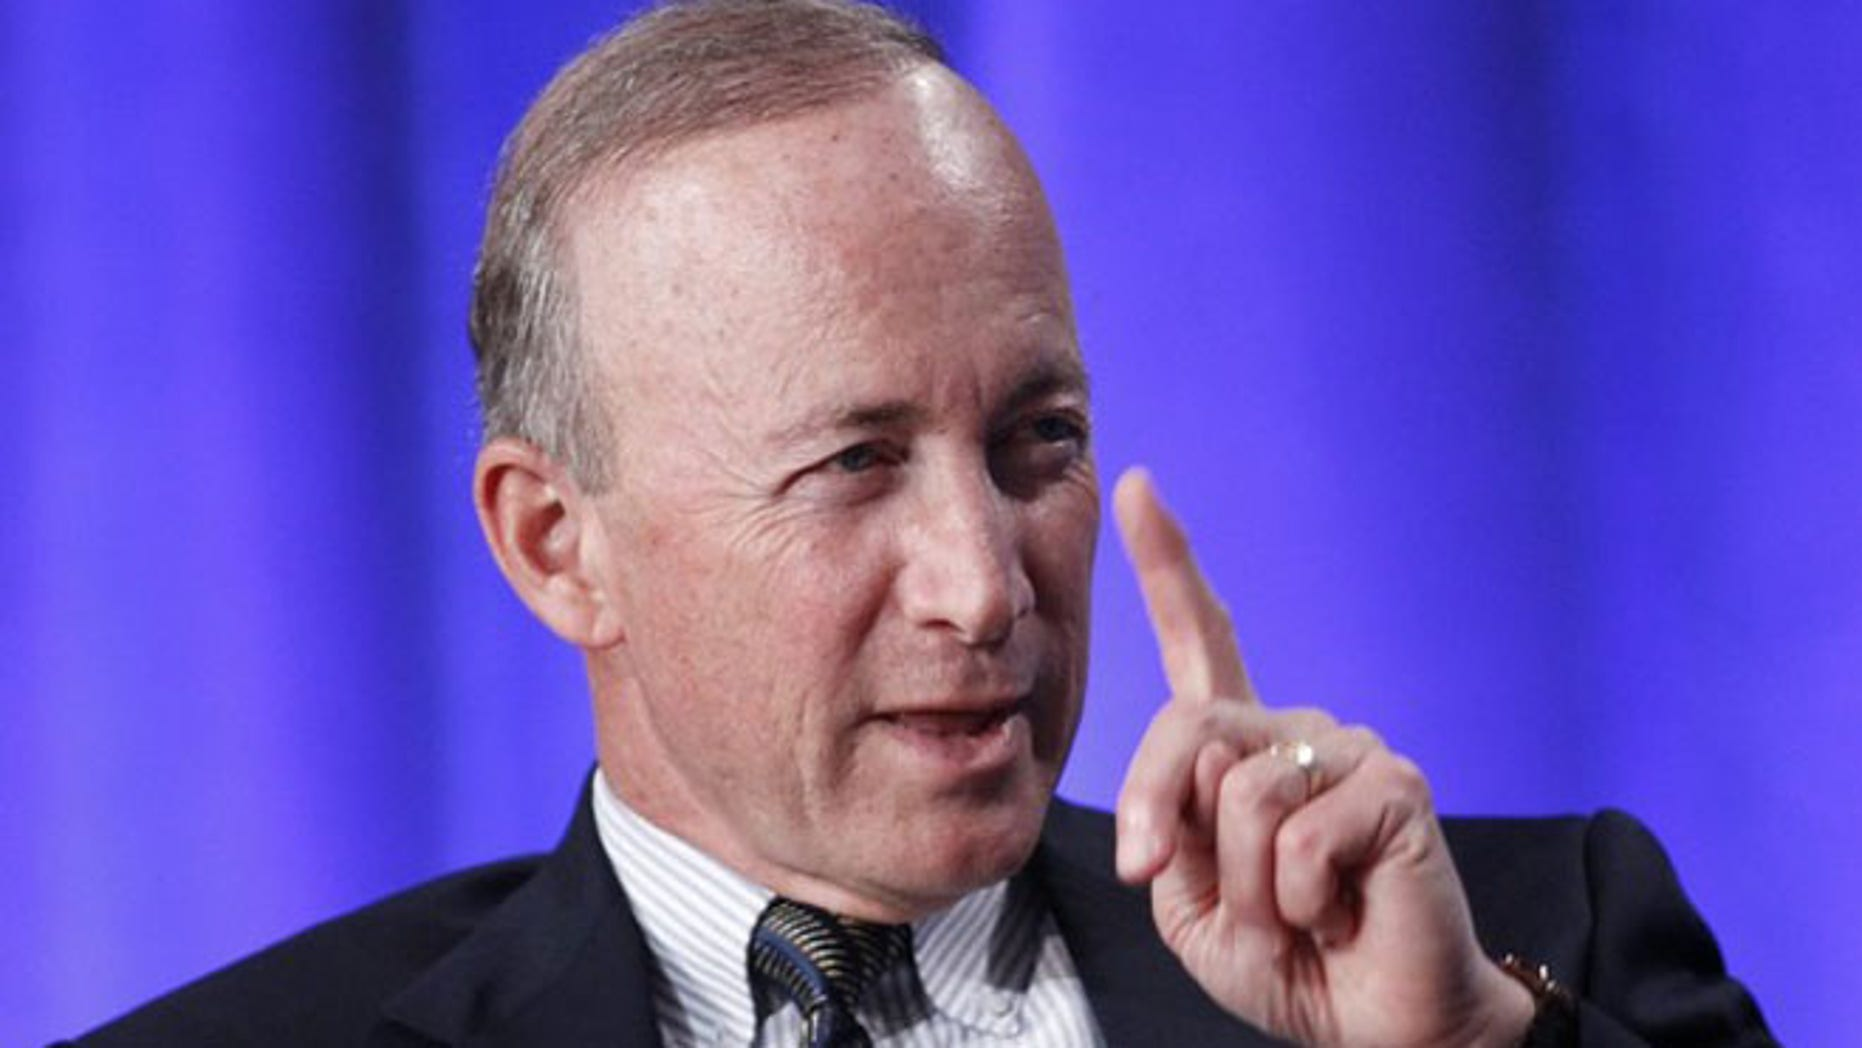 FILE: May 1, 2012: Indiana Gov. Mitch Daniels takes part in a panel discussion at the Milken Institute Global Conference in Beverly Hills, Calif.